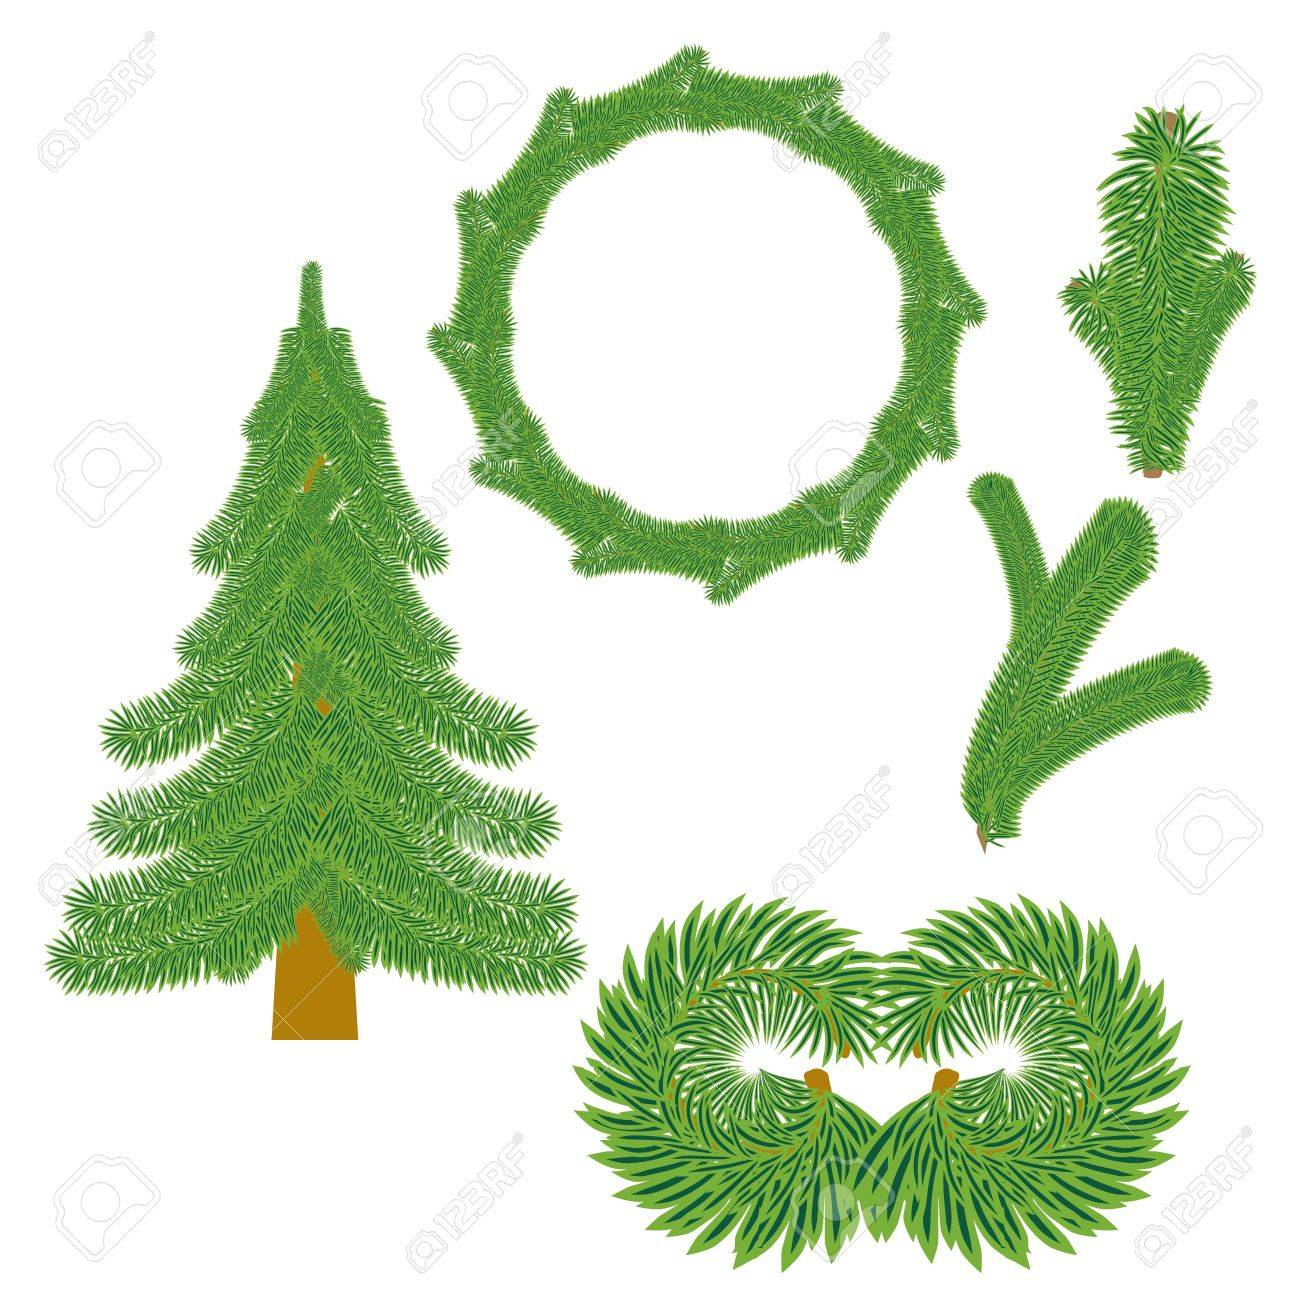 set of Christmas tree branches isolated on white without transparency and gradients Stock Vector - 16057029